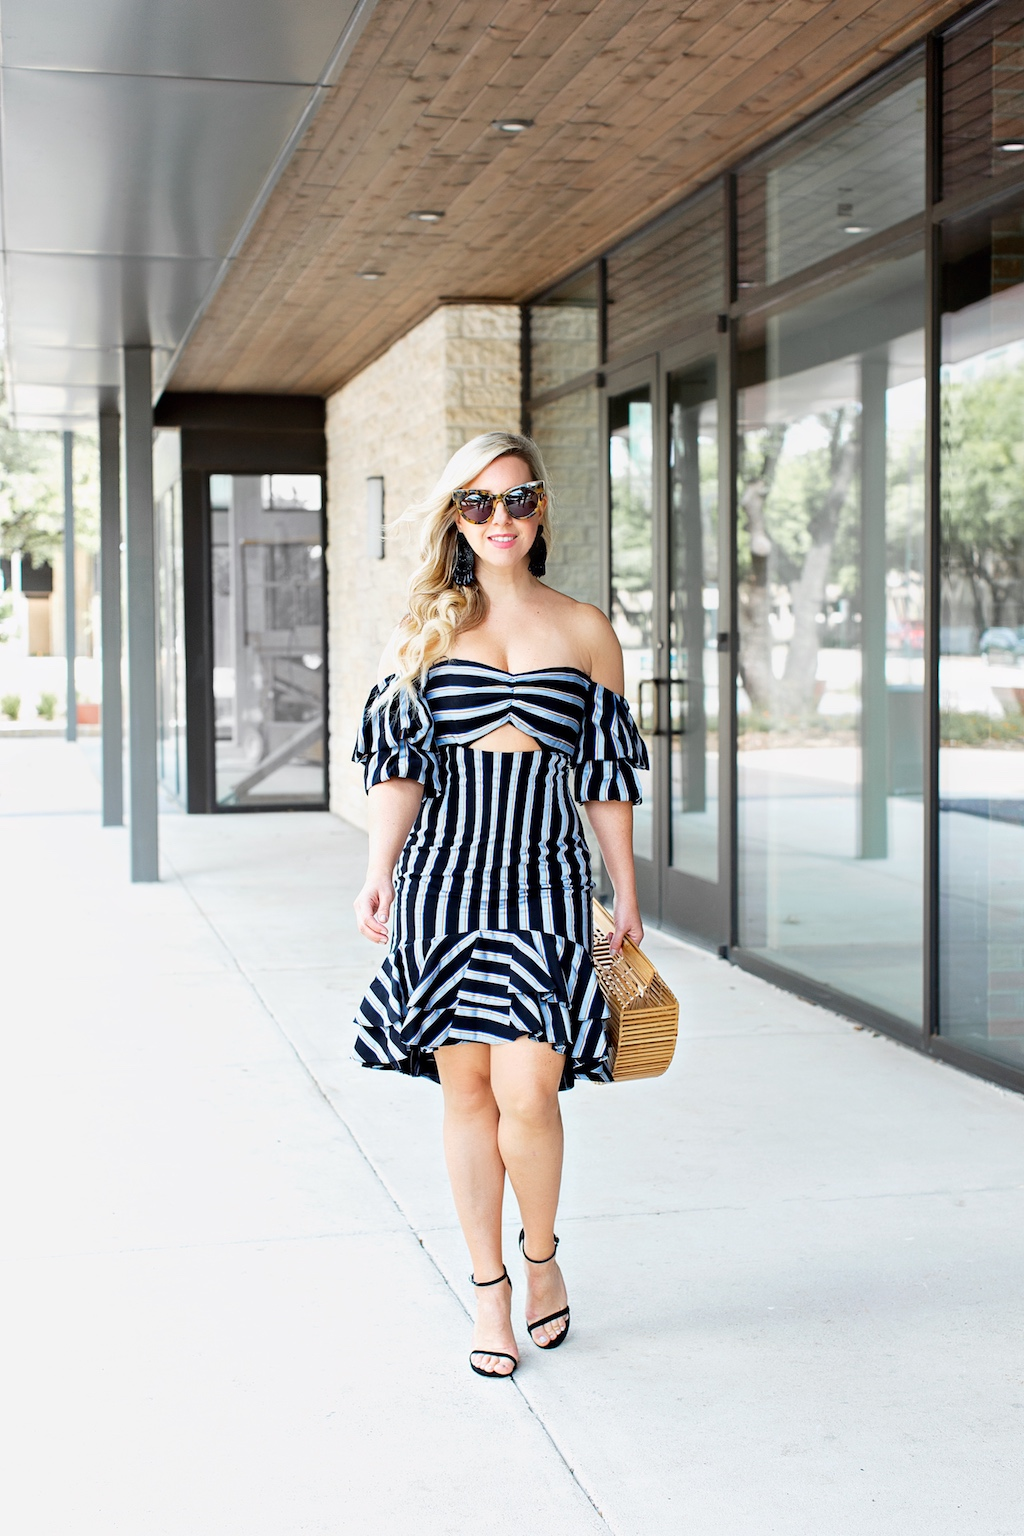 Off the Shoulder Ruffle Dress | The Darling Petite Diva